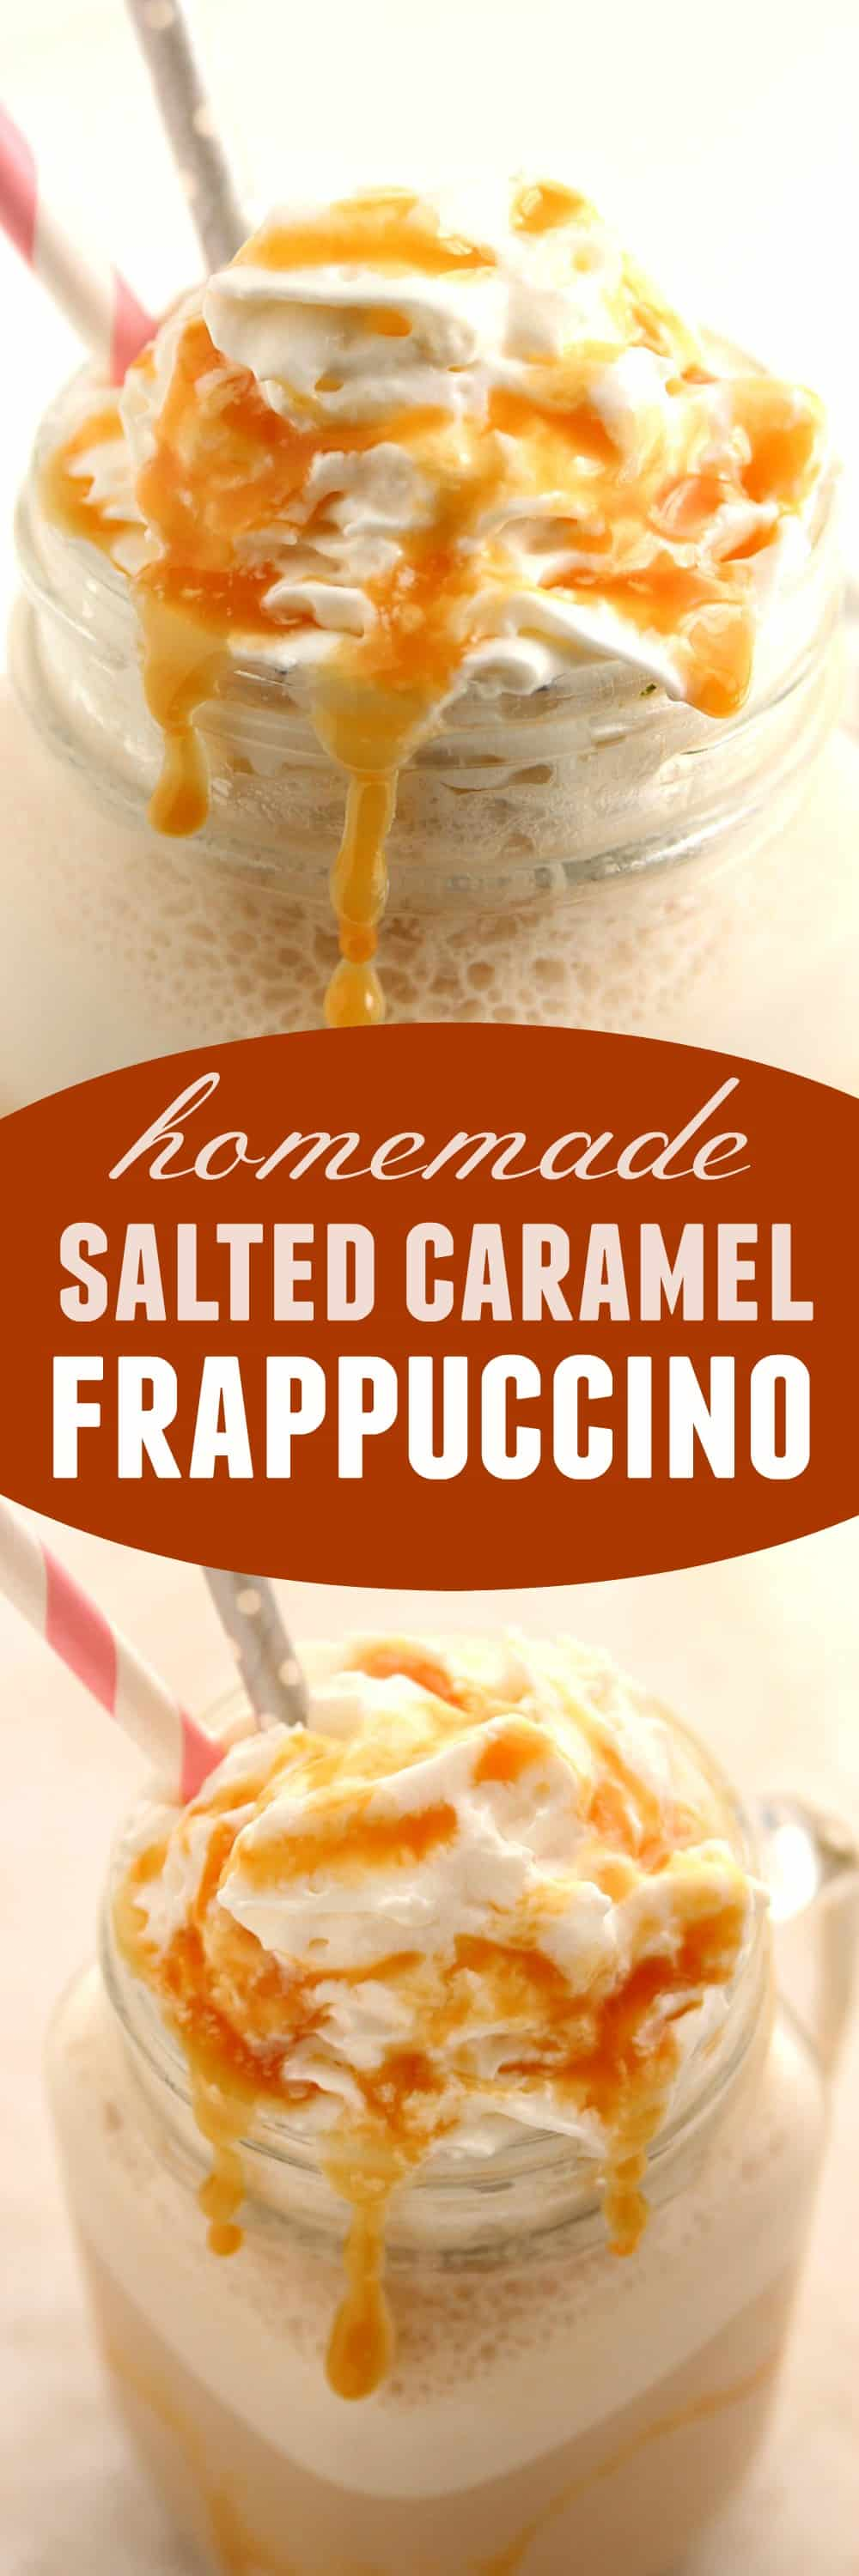 Homemade Salted Caramel Frappuccino Recipe Crunchy Creamy Sweet